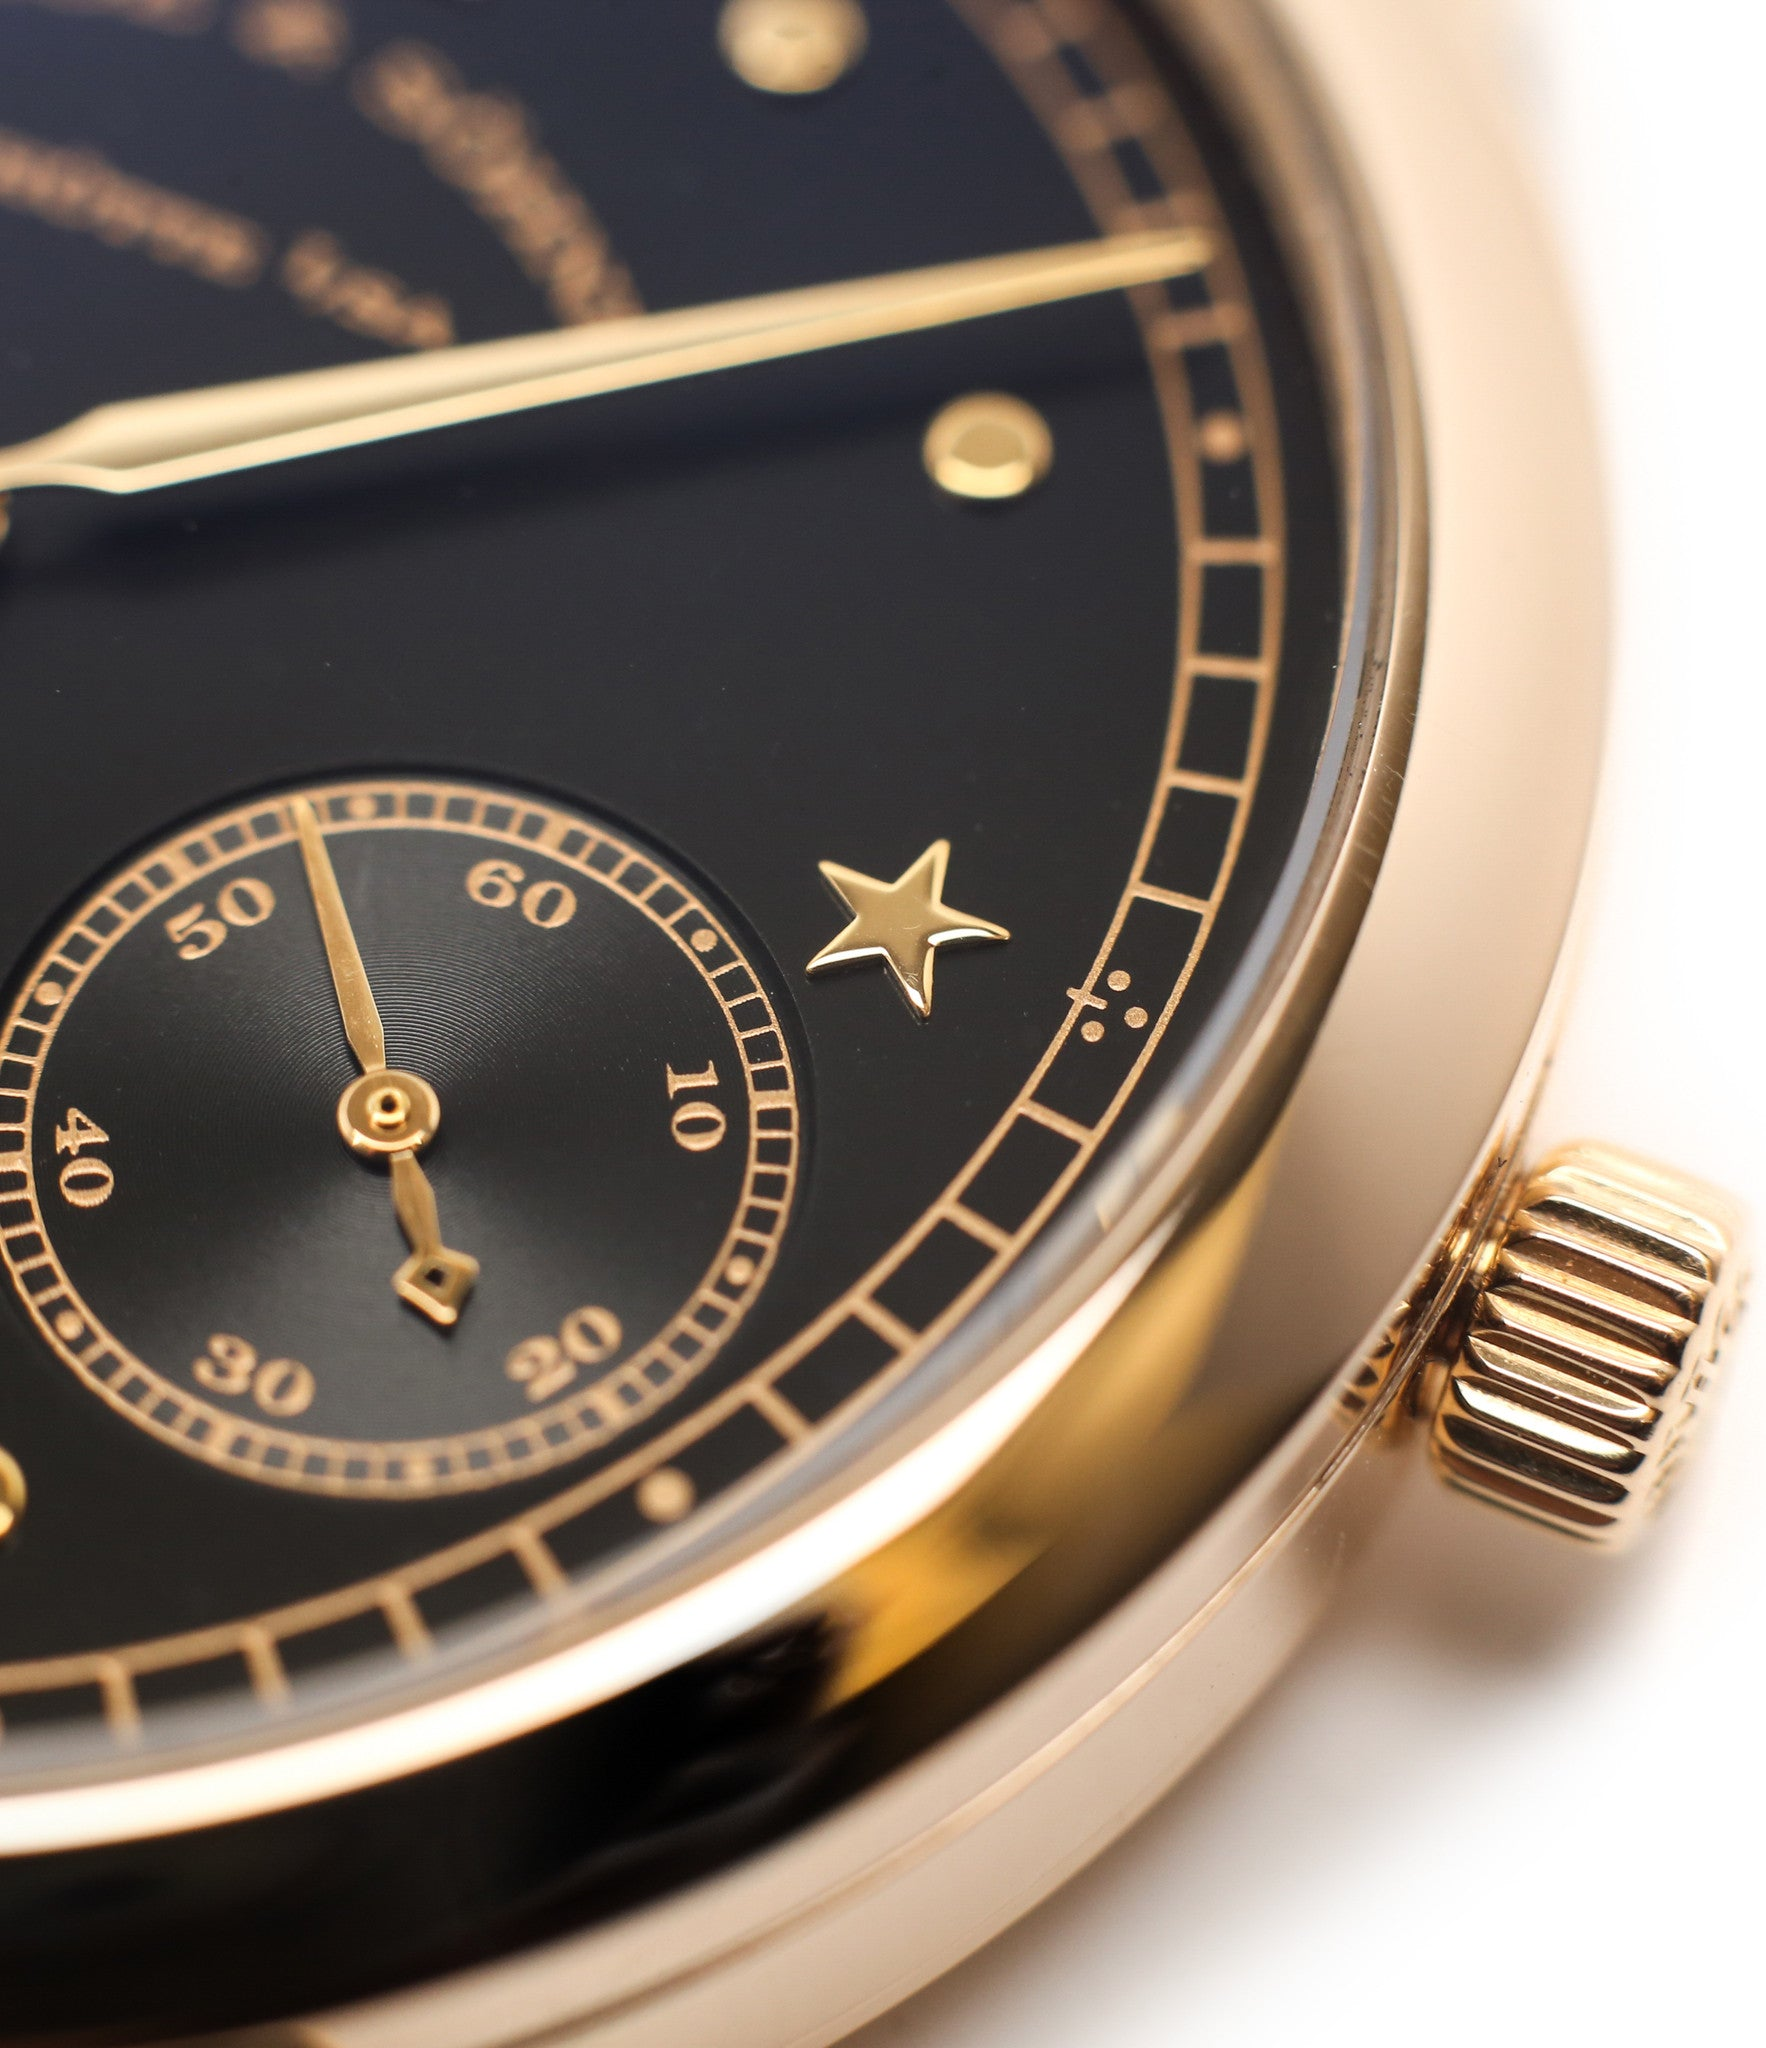 star index markers buy rare A. Lange & Söhne 1815 Moonphase Hommage a Emil Lange 1849-1922 rose gold black dial watch at A Collected Man curated platform of rare and vintage watches